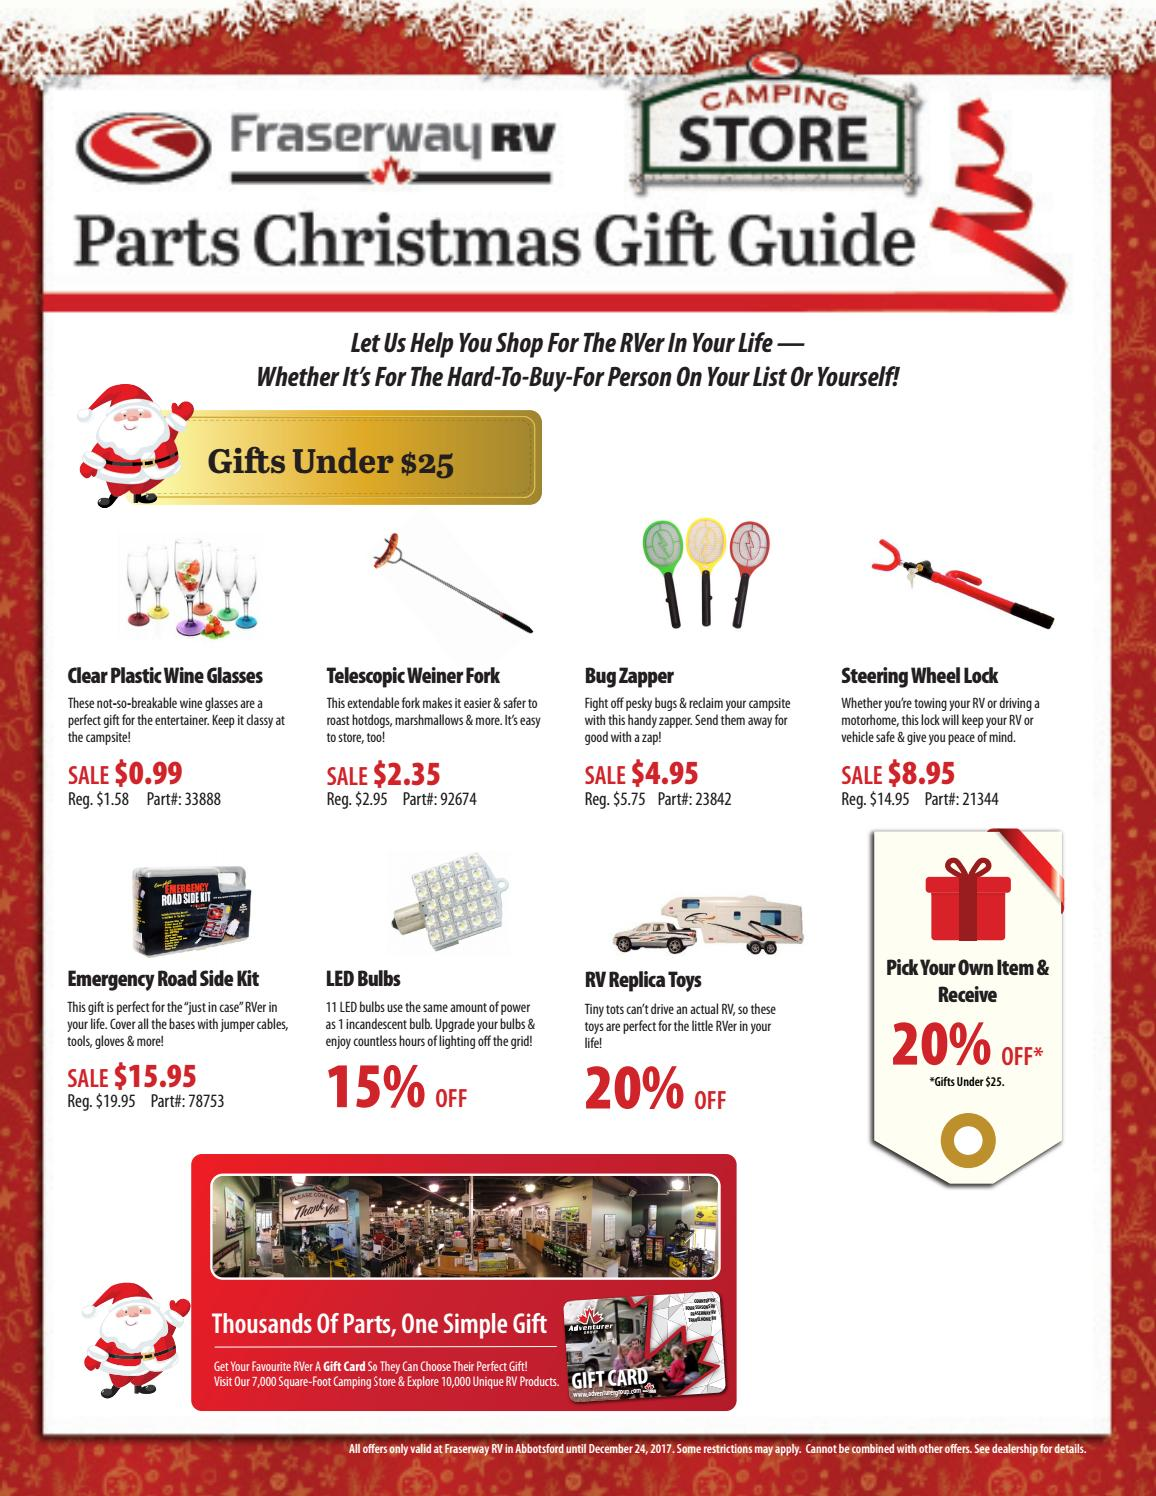 Fraserway RV - 2017 Abbotsford Parts Christmas Gift Guide by